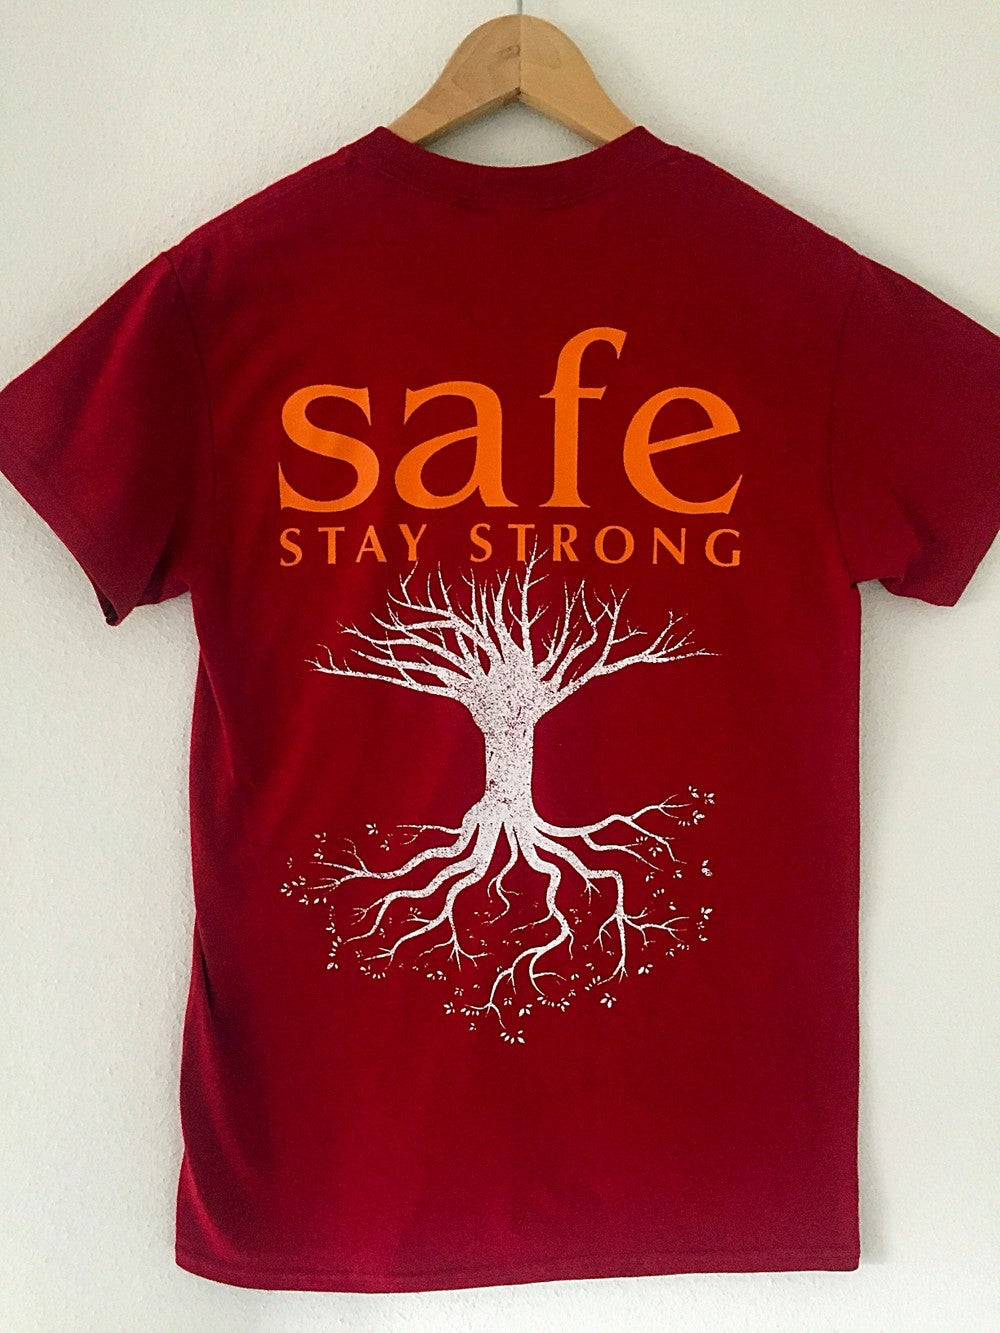 SAFE 'Stay Strong' T-Shirt / Cardinal Red